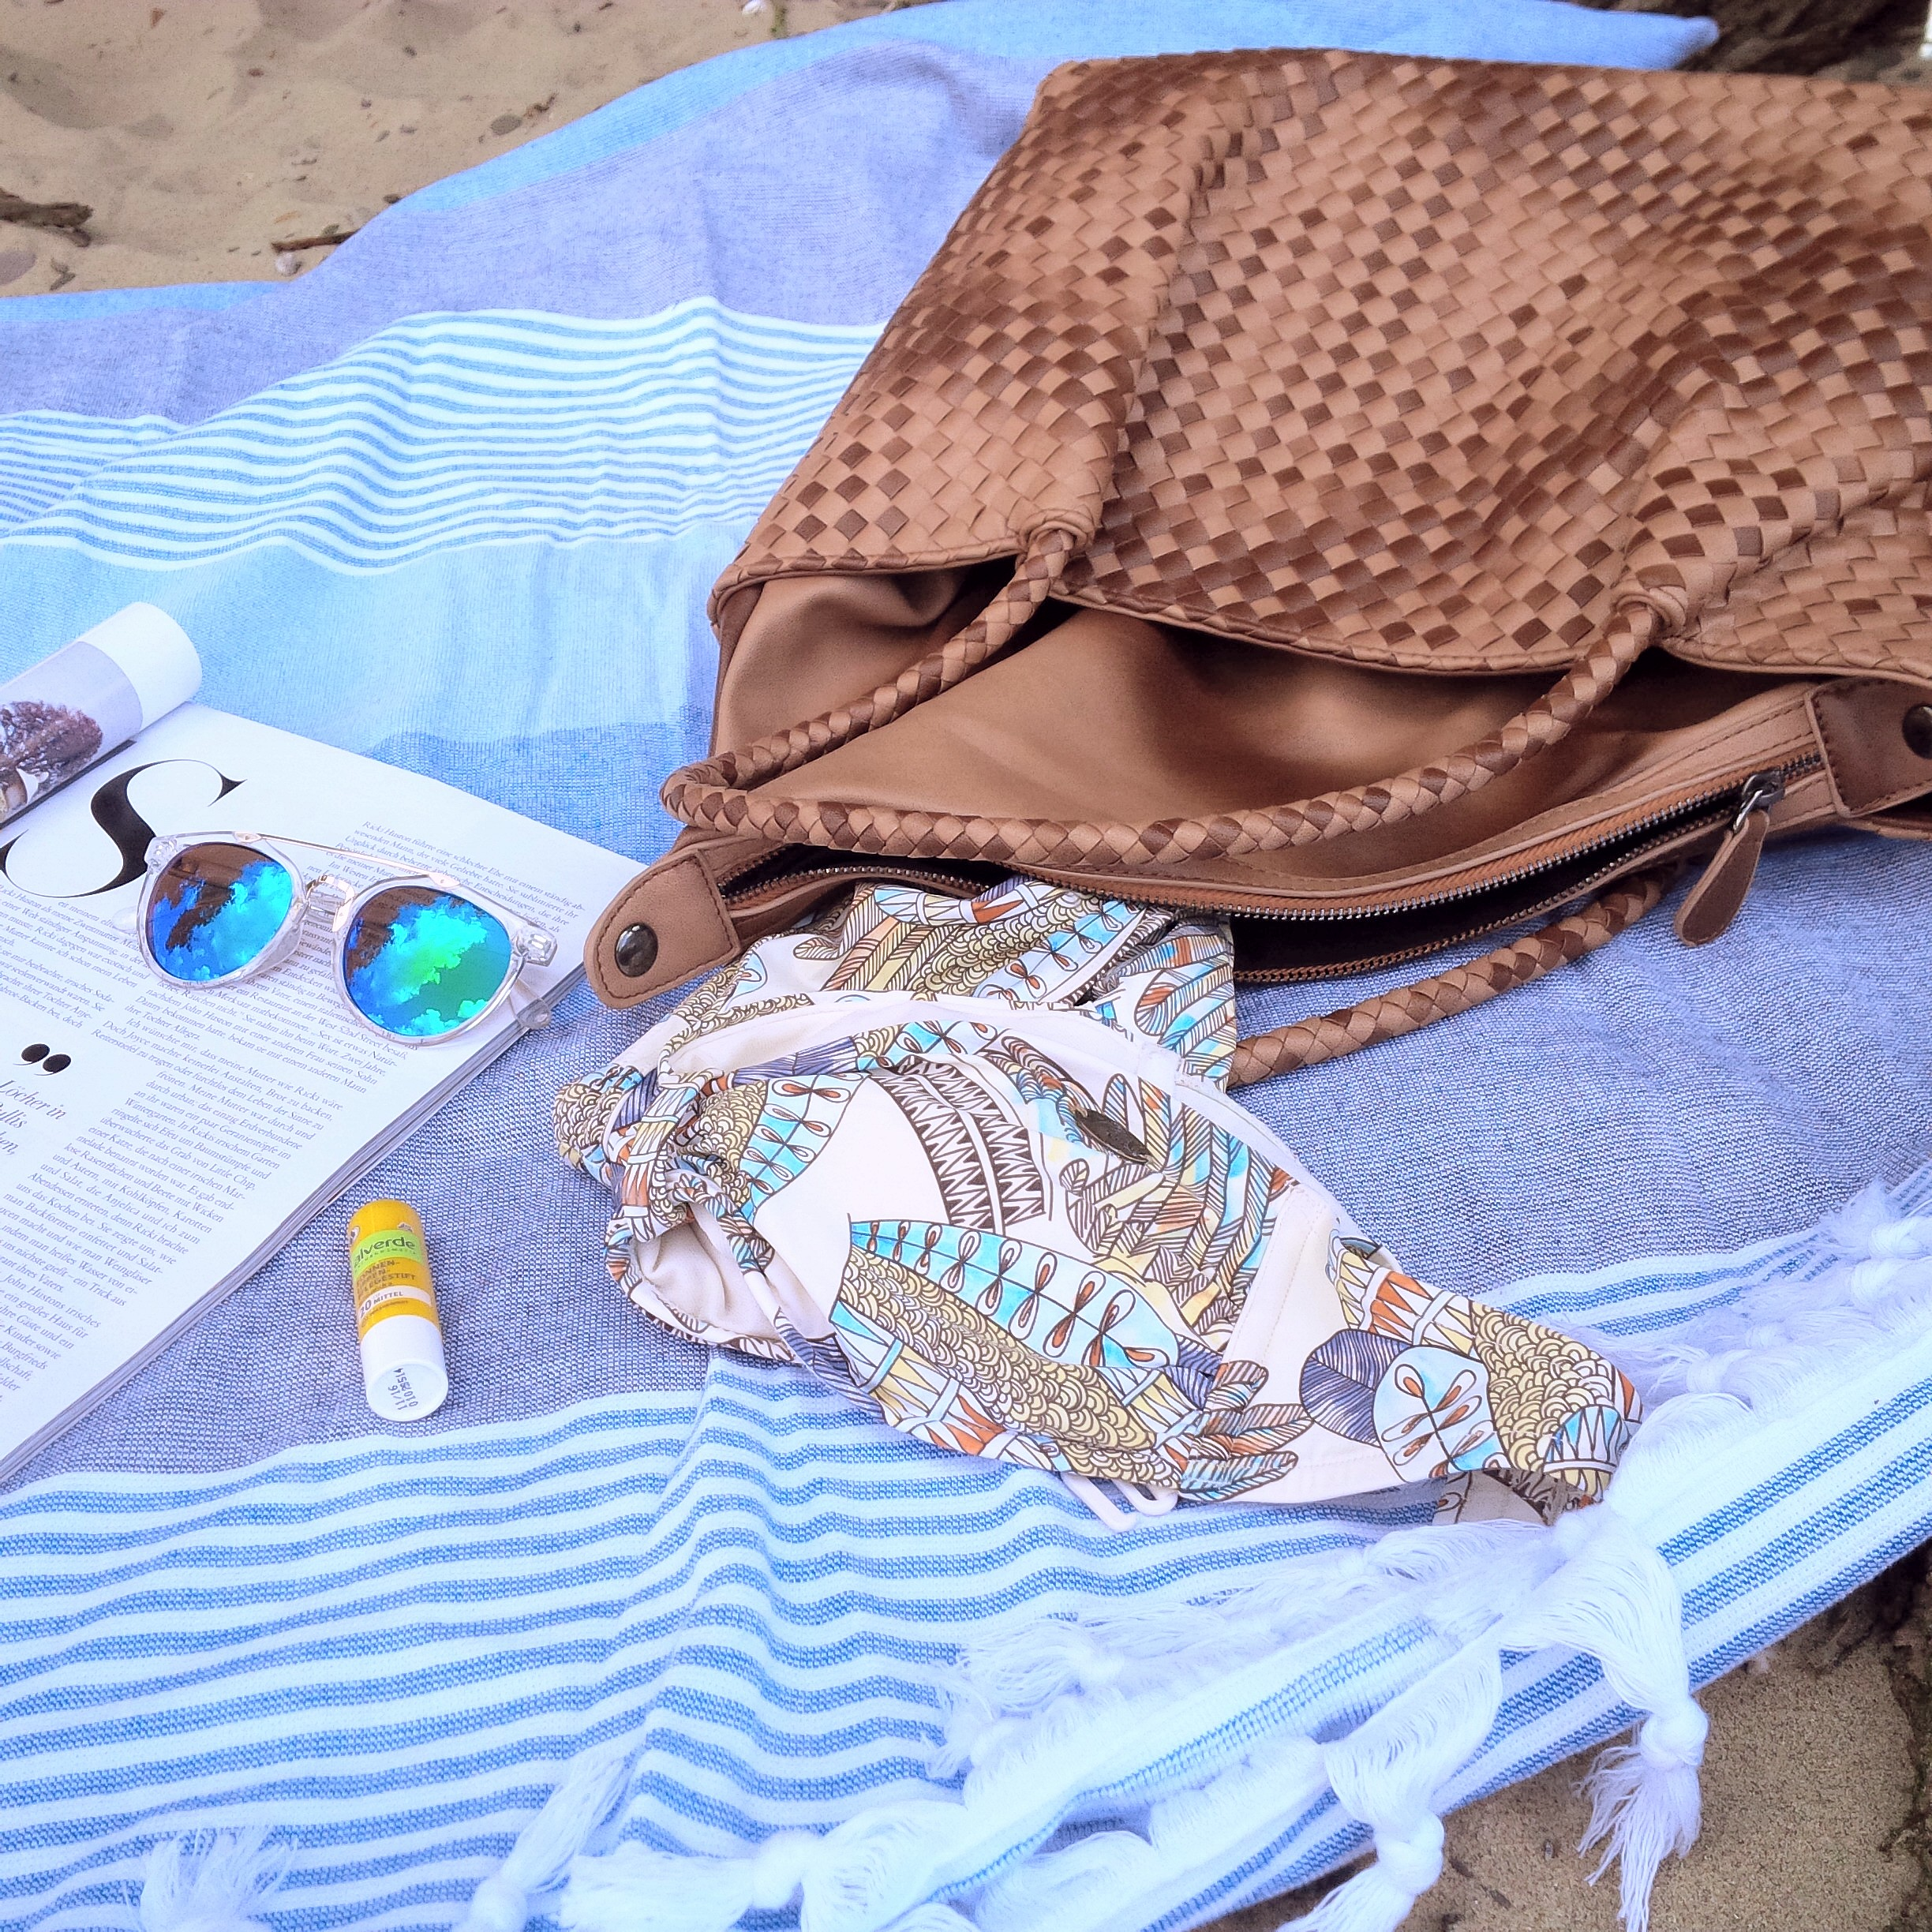 Summer Kick-Off. What's in My Bag & How to Get Ready For Summer. Inspiration. Liebe was ist. Summer Essentials. Tipps, Advice. Sponsored Post - Witt Weiden (6)